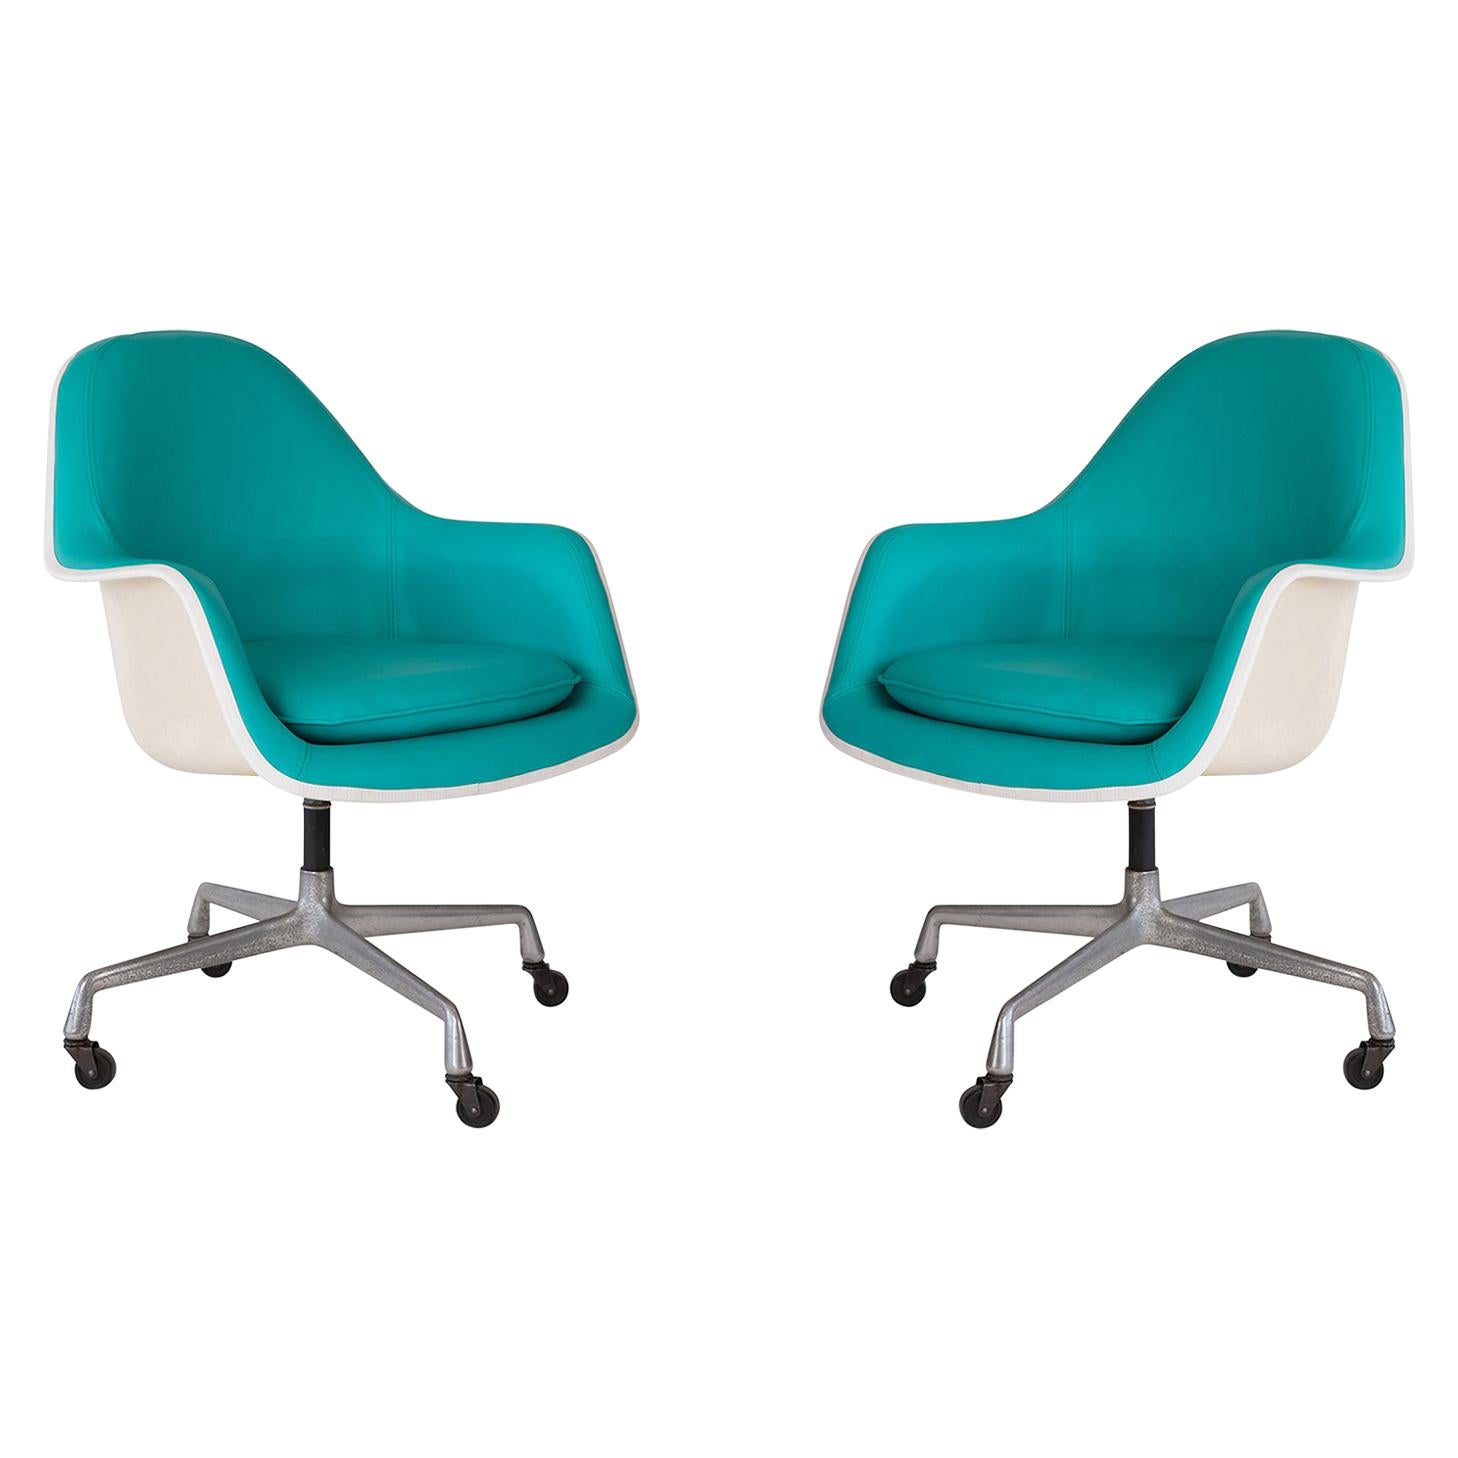 Charles Ray Eames Herman Miller Office Chairs